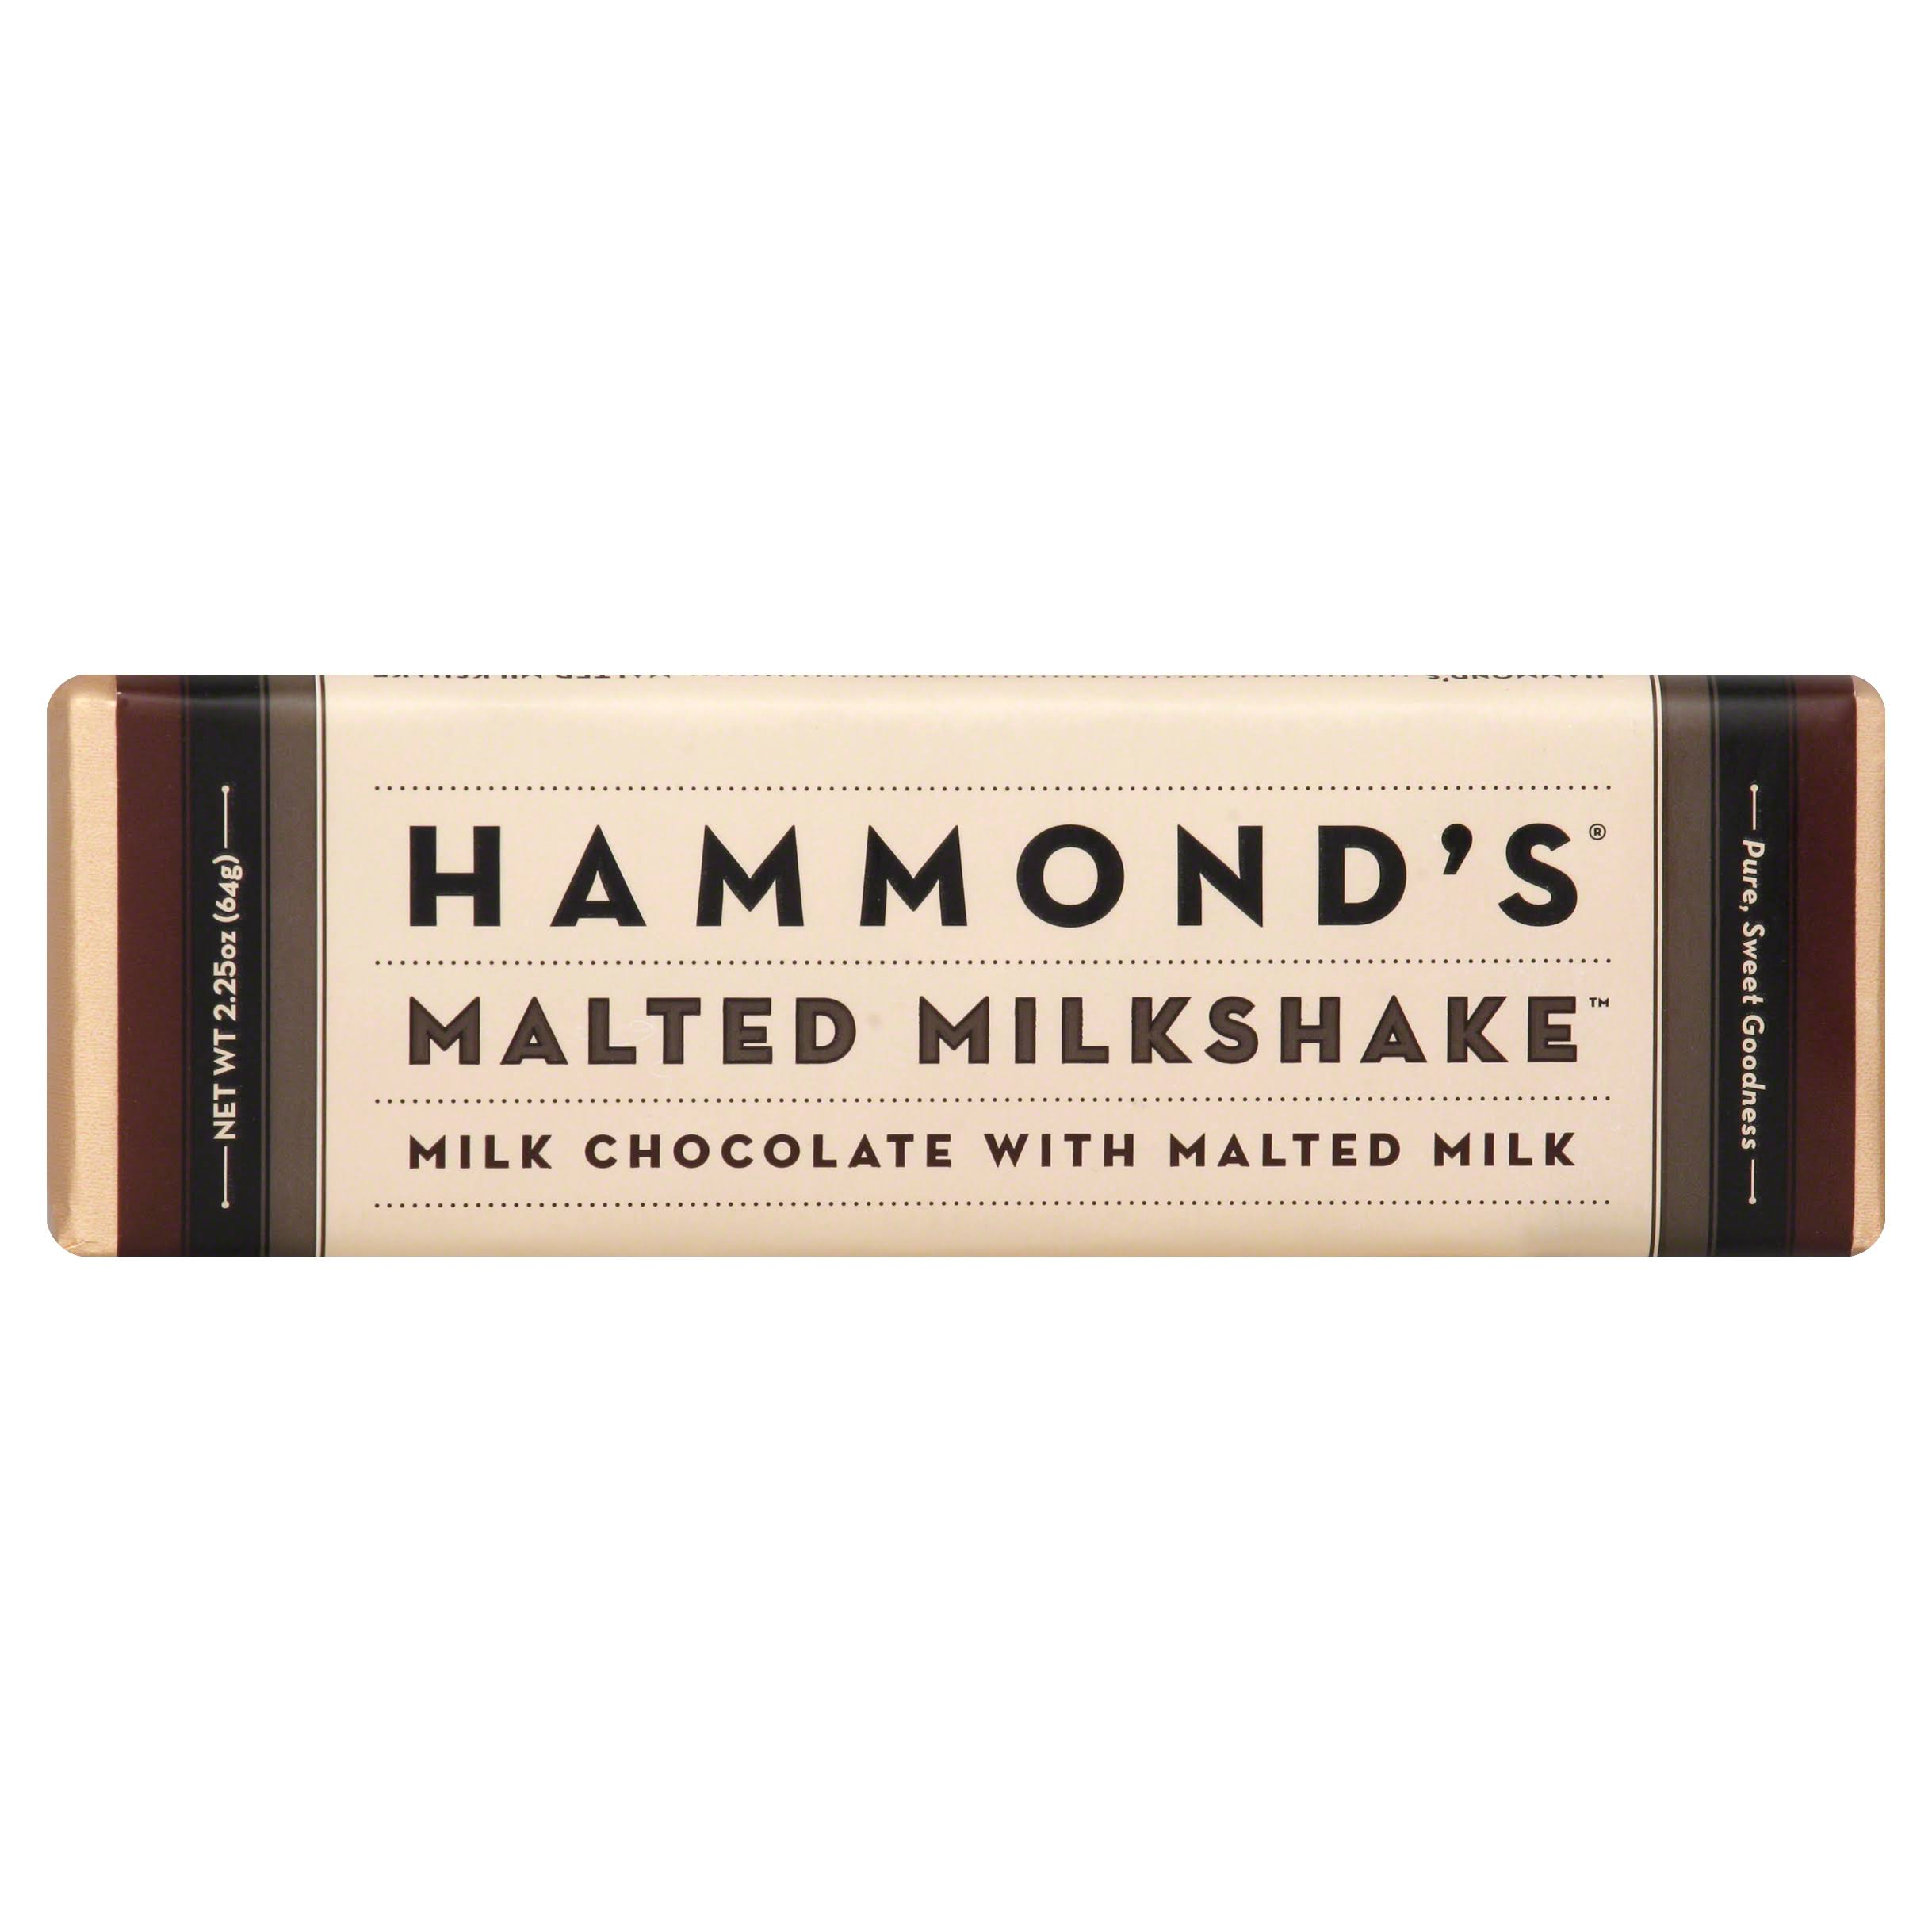 Hammond's Milk Chocolate - Malted Milkshake, 2.25oz, 12ct